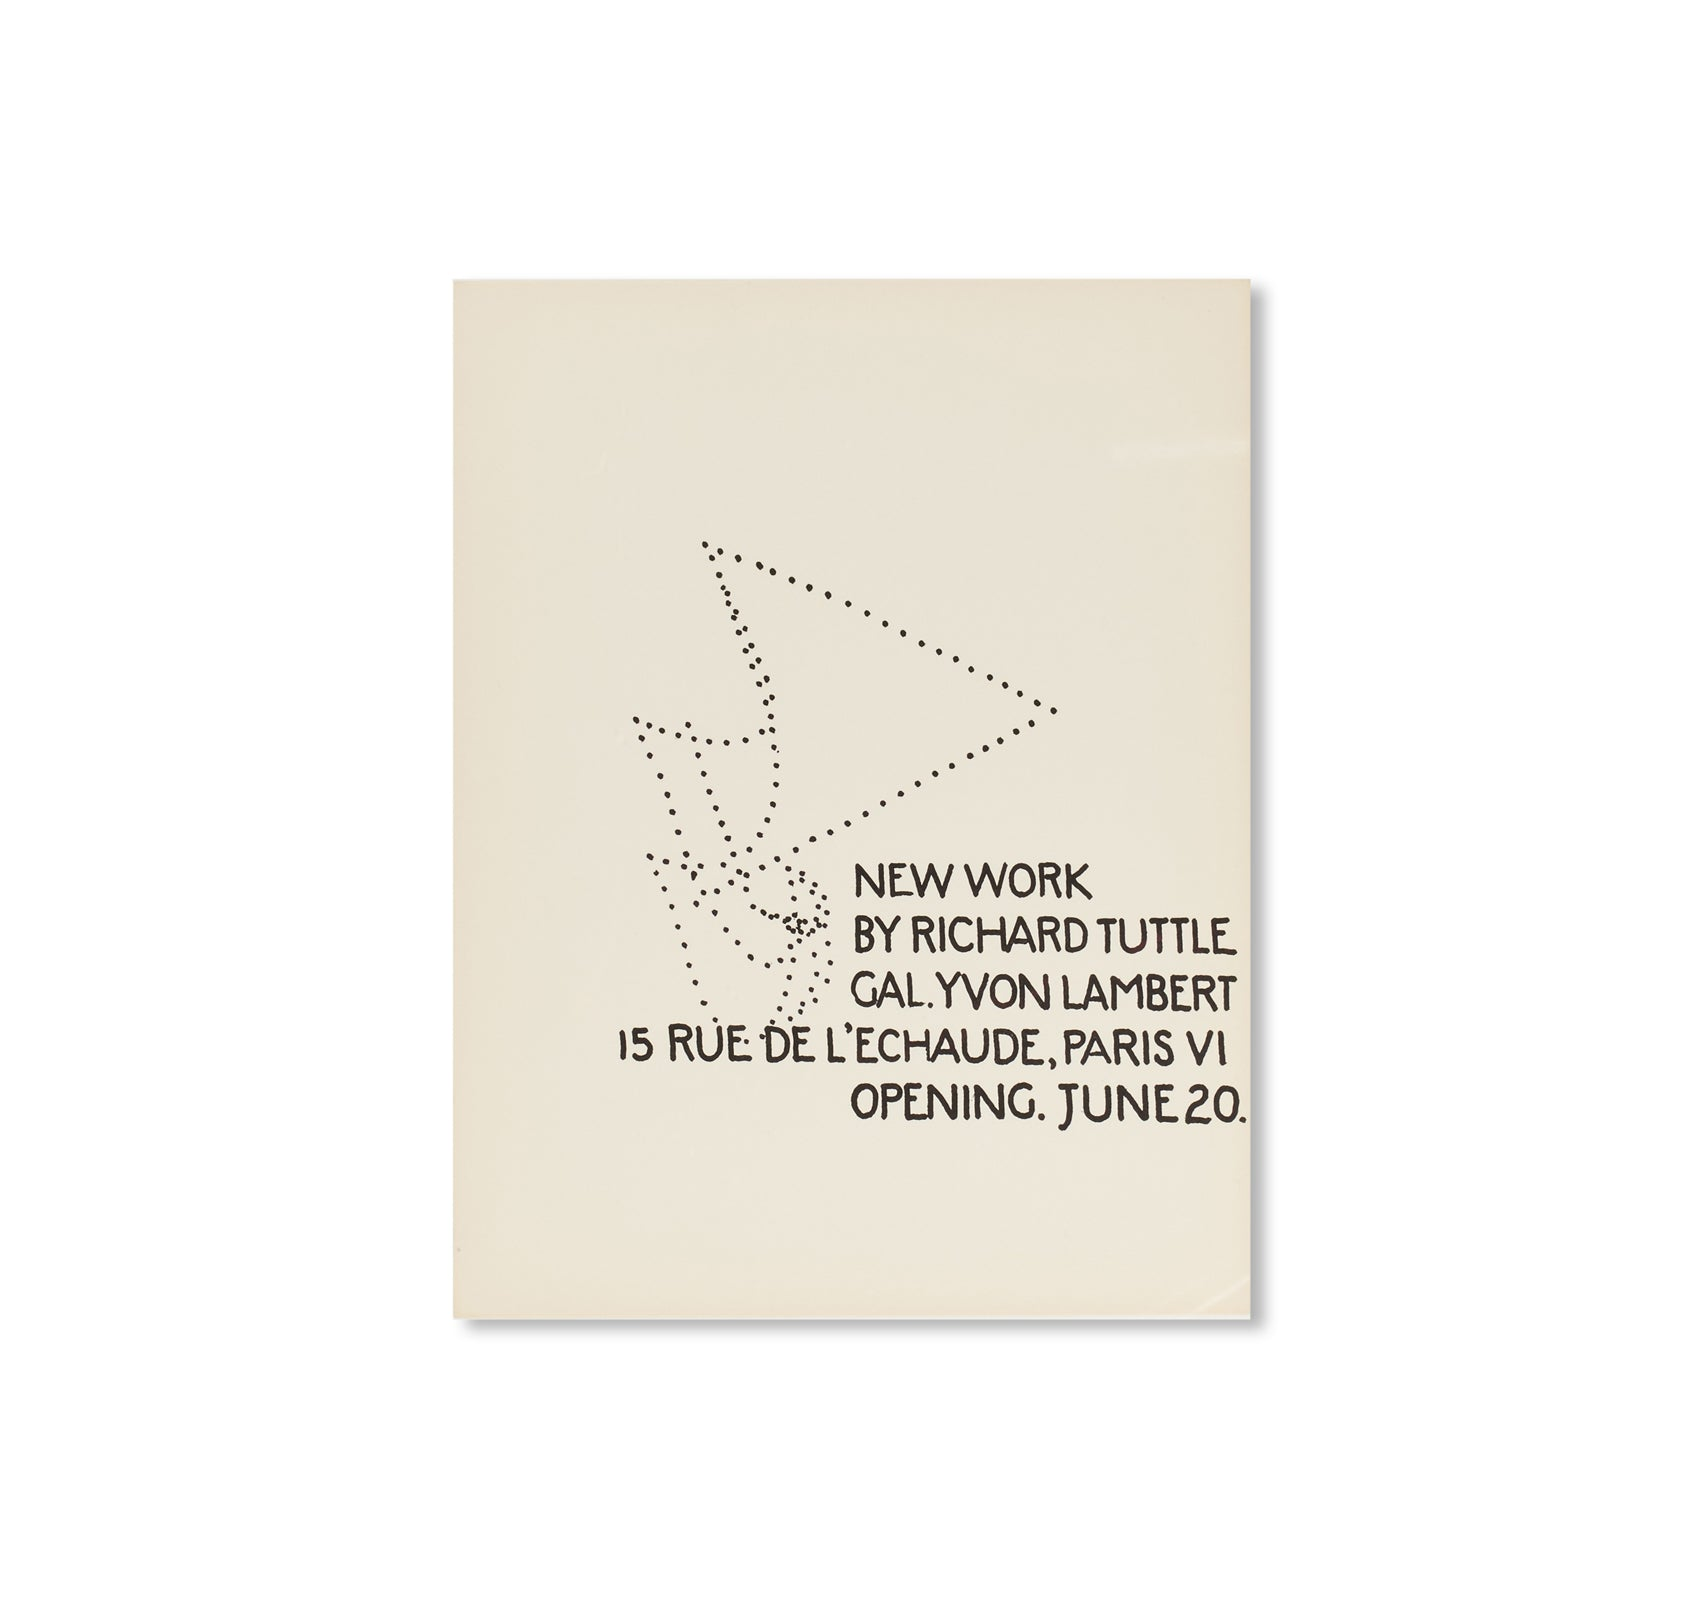 PRINT (1972) by Richard Tuttle